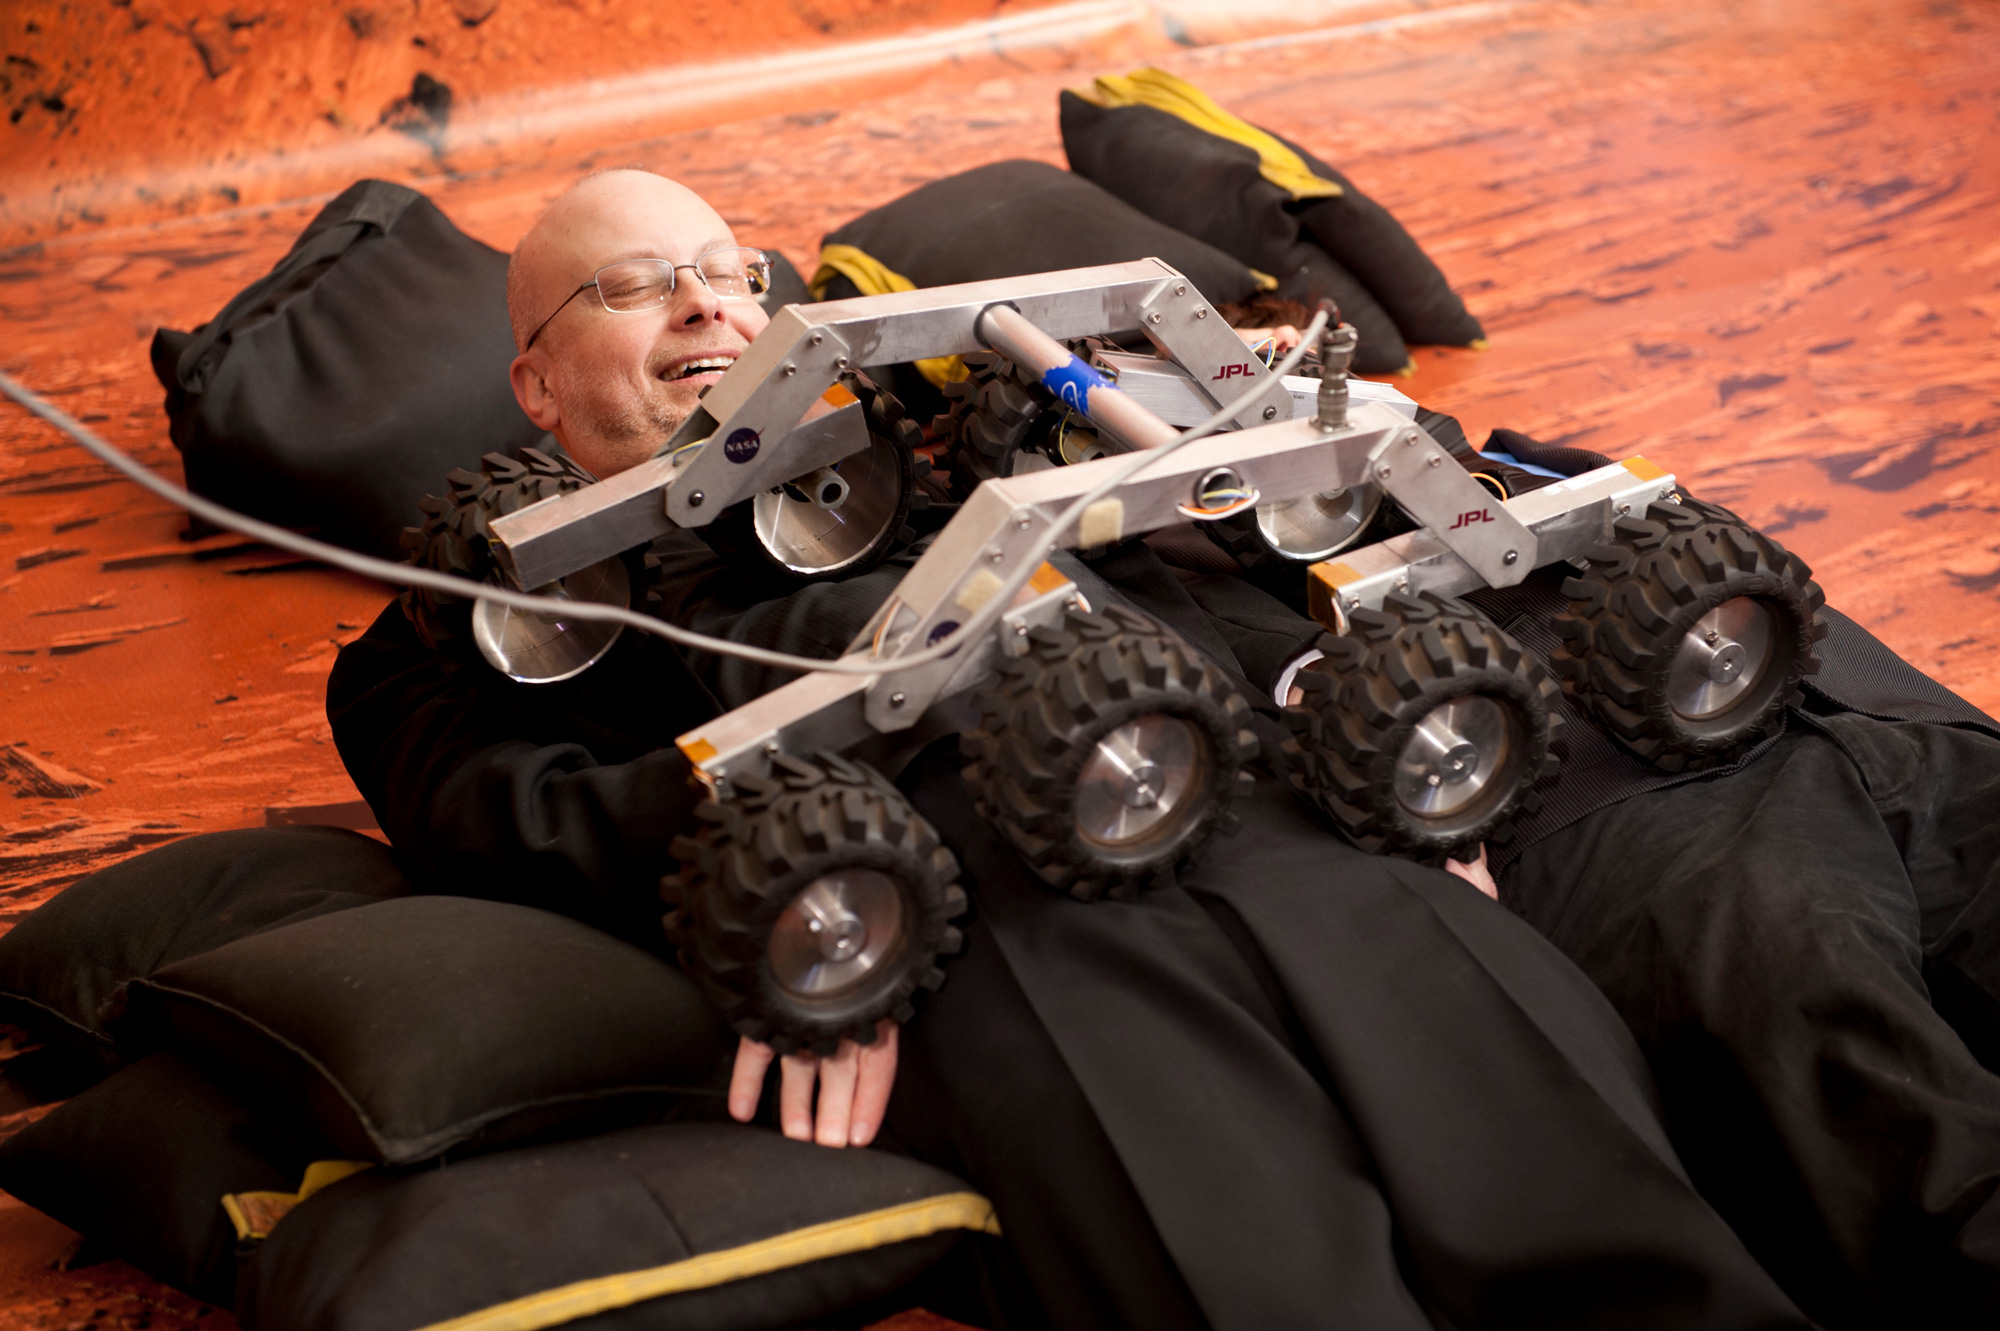 At Writers of the Future Volume 29 release event, one of the Mars Rover prototypes was driven over Rob Sawyer.